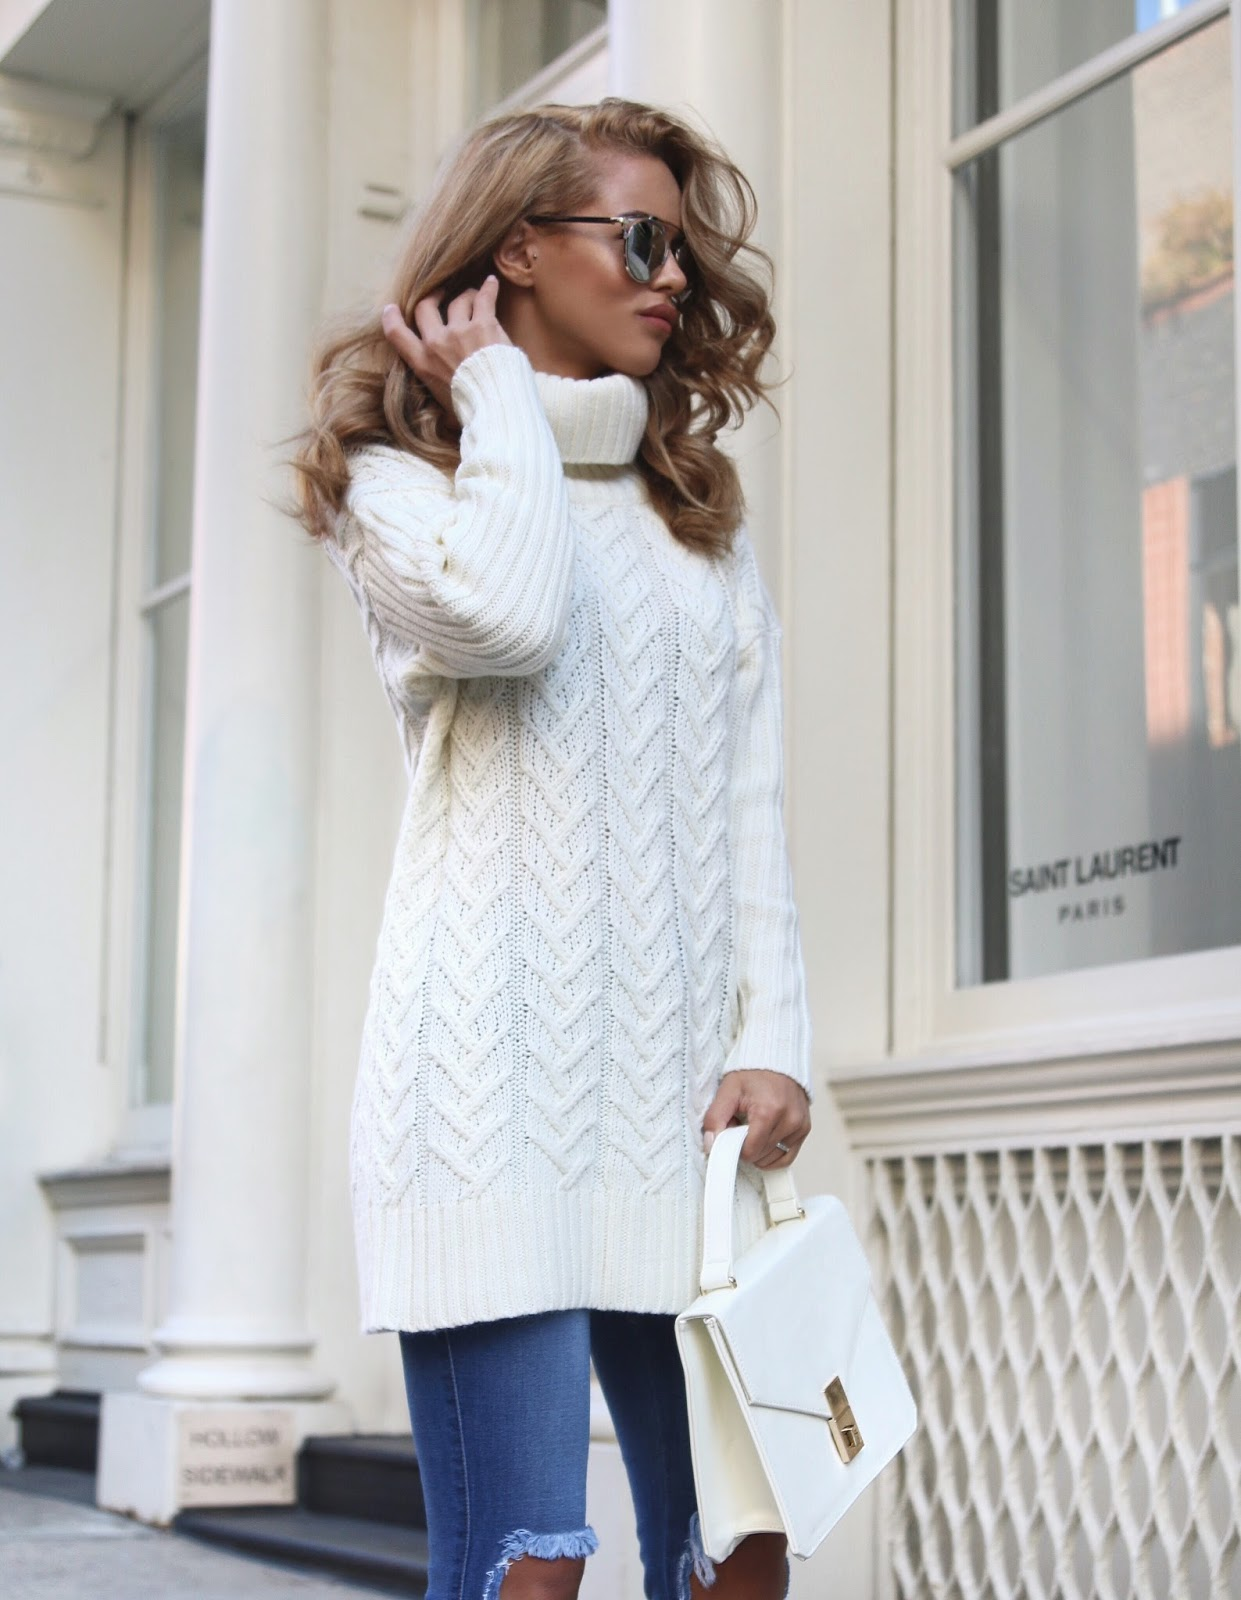 This chunky white turtle neck style knit makes a great match with simple denim jeans. Alternatively, wearing a pale knit sweater with black jeans would make for an edgy monochrome look. Via Nada Adelle. Jumper: Runway 96, Ripped Jeans: Fashion Nova, Sunglasses: Yesstyle, Hand Bag/Heels: Luxe To Kill.